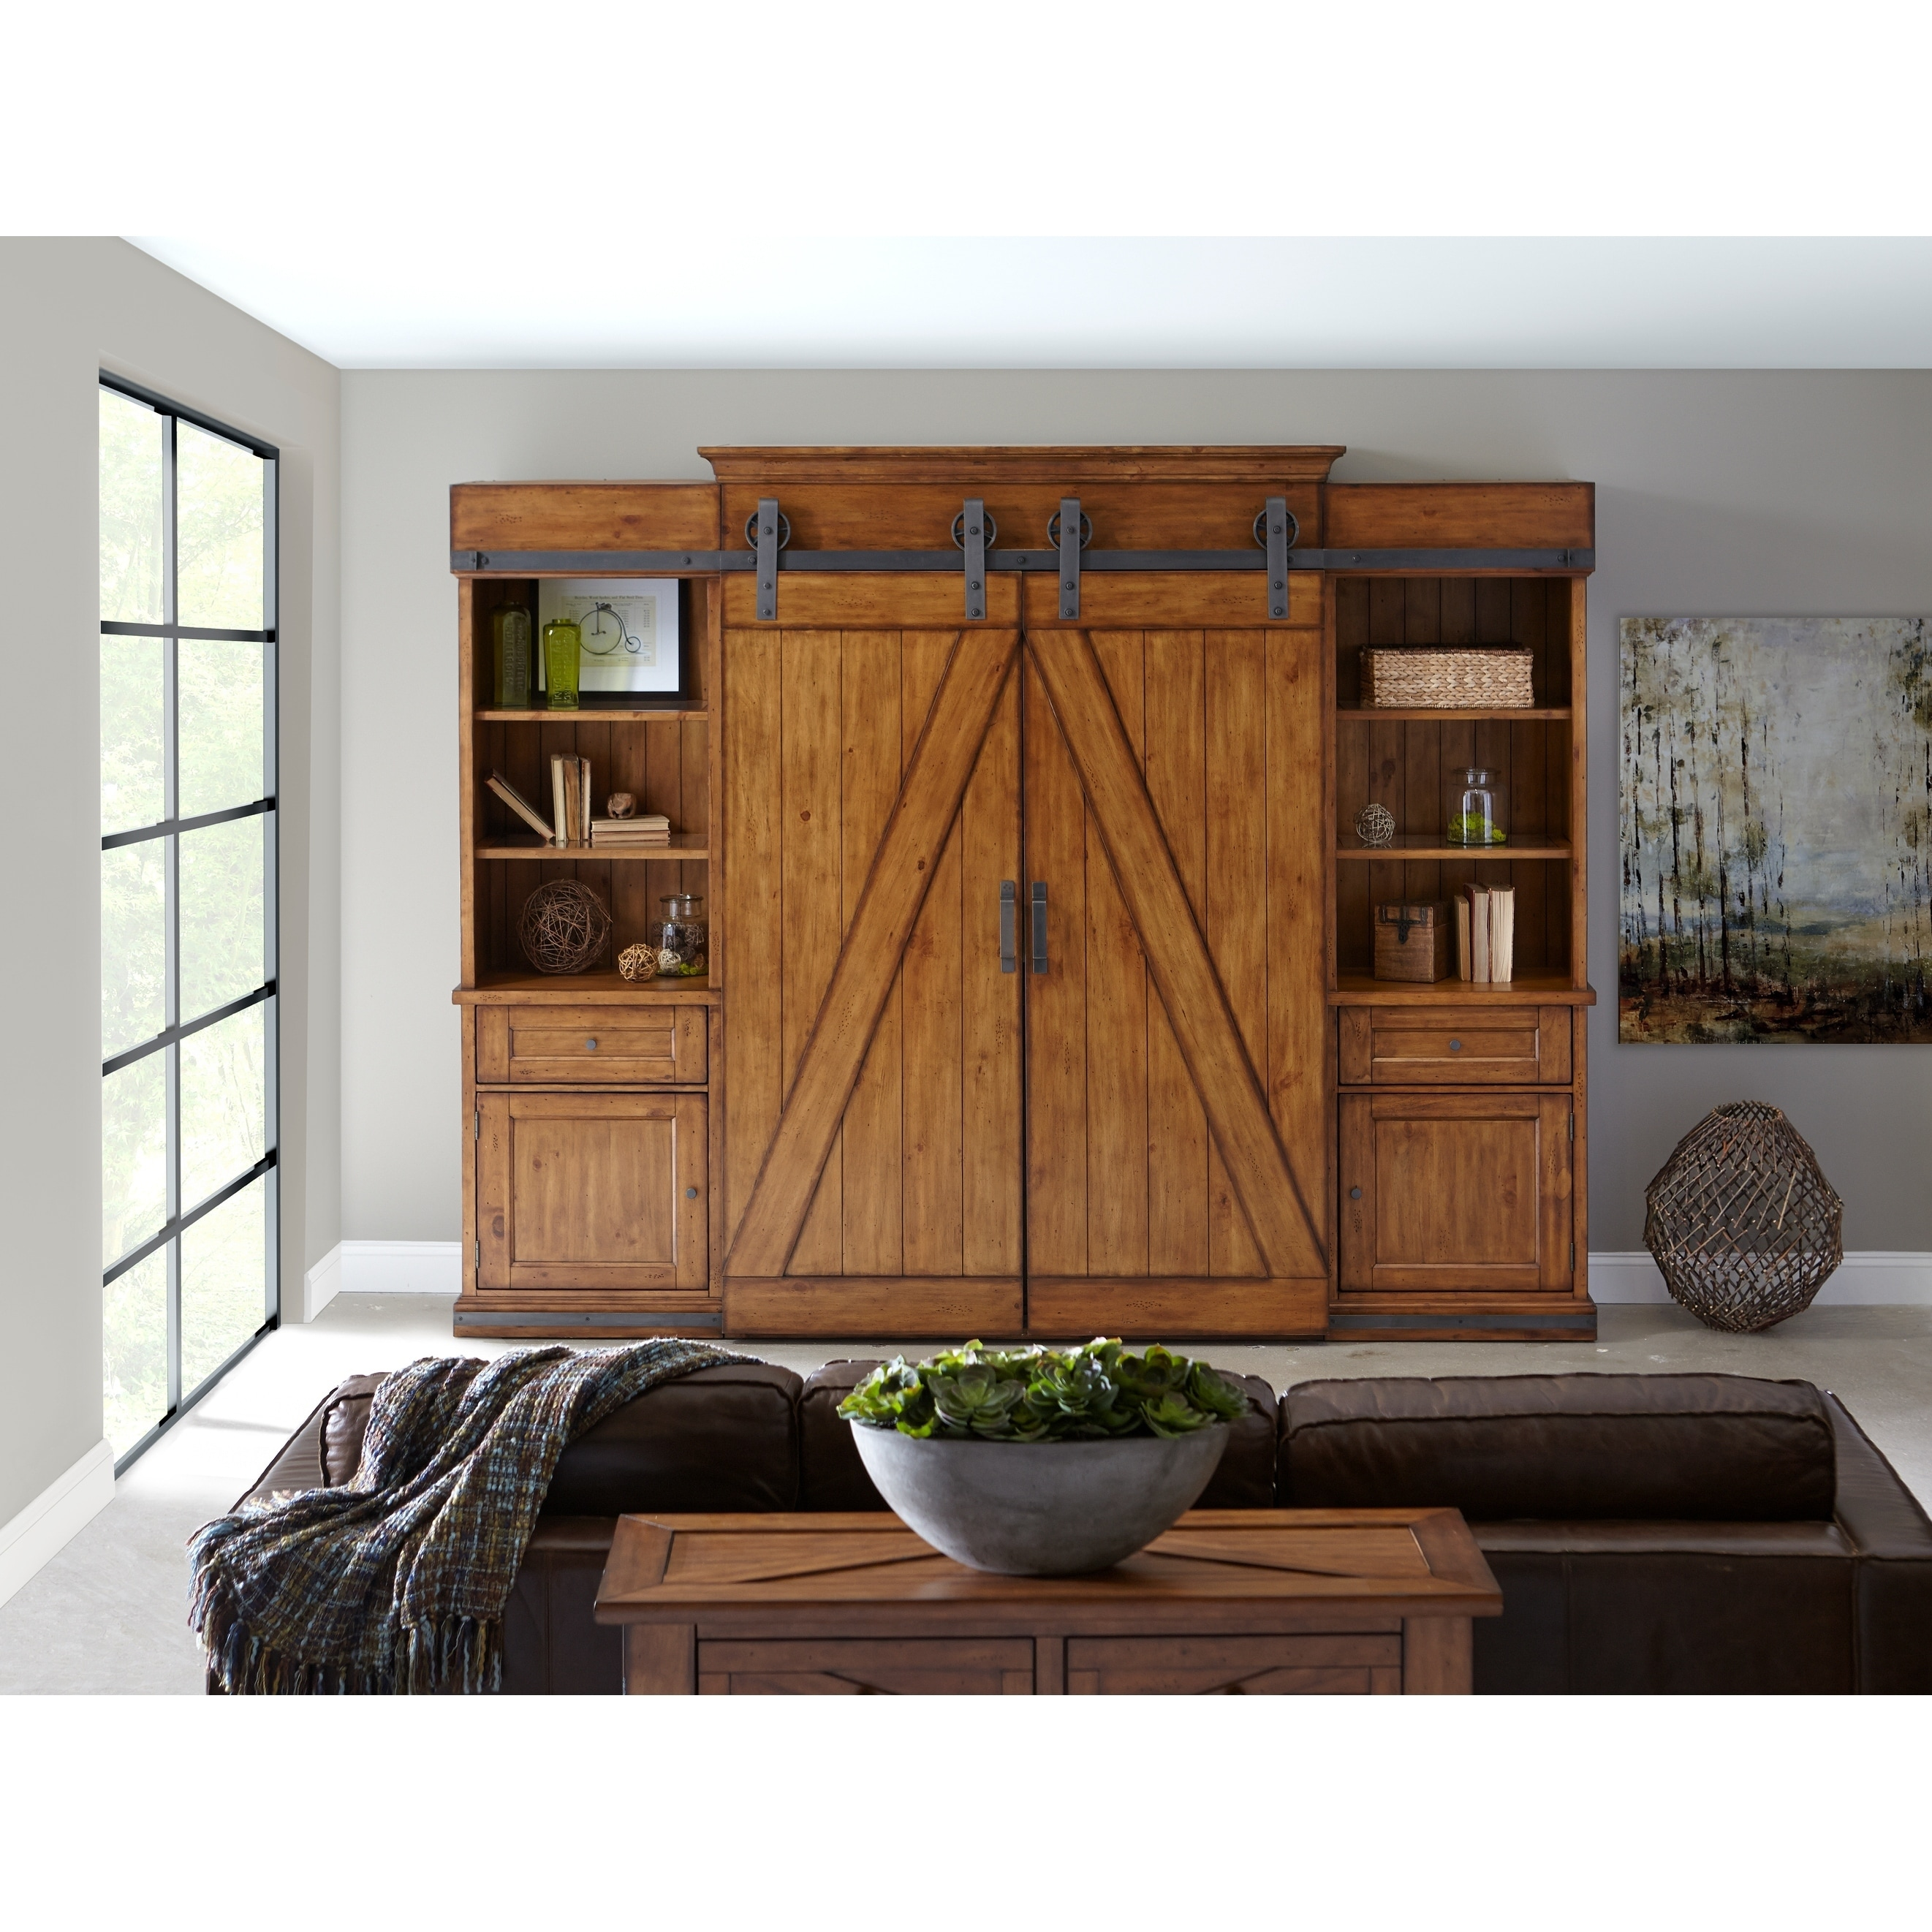 Shop Harper Farm Rustic Warm Pine Barn Door Entertainment Console   Free  Shipping Today   Overstock.com   20108319